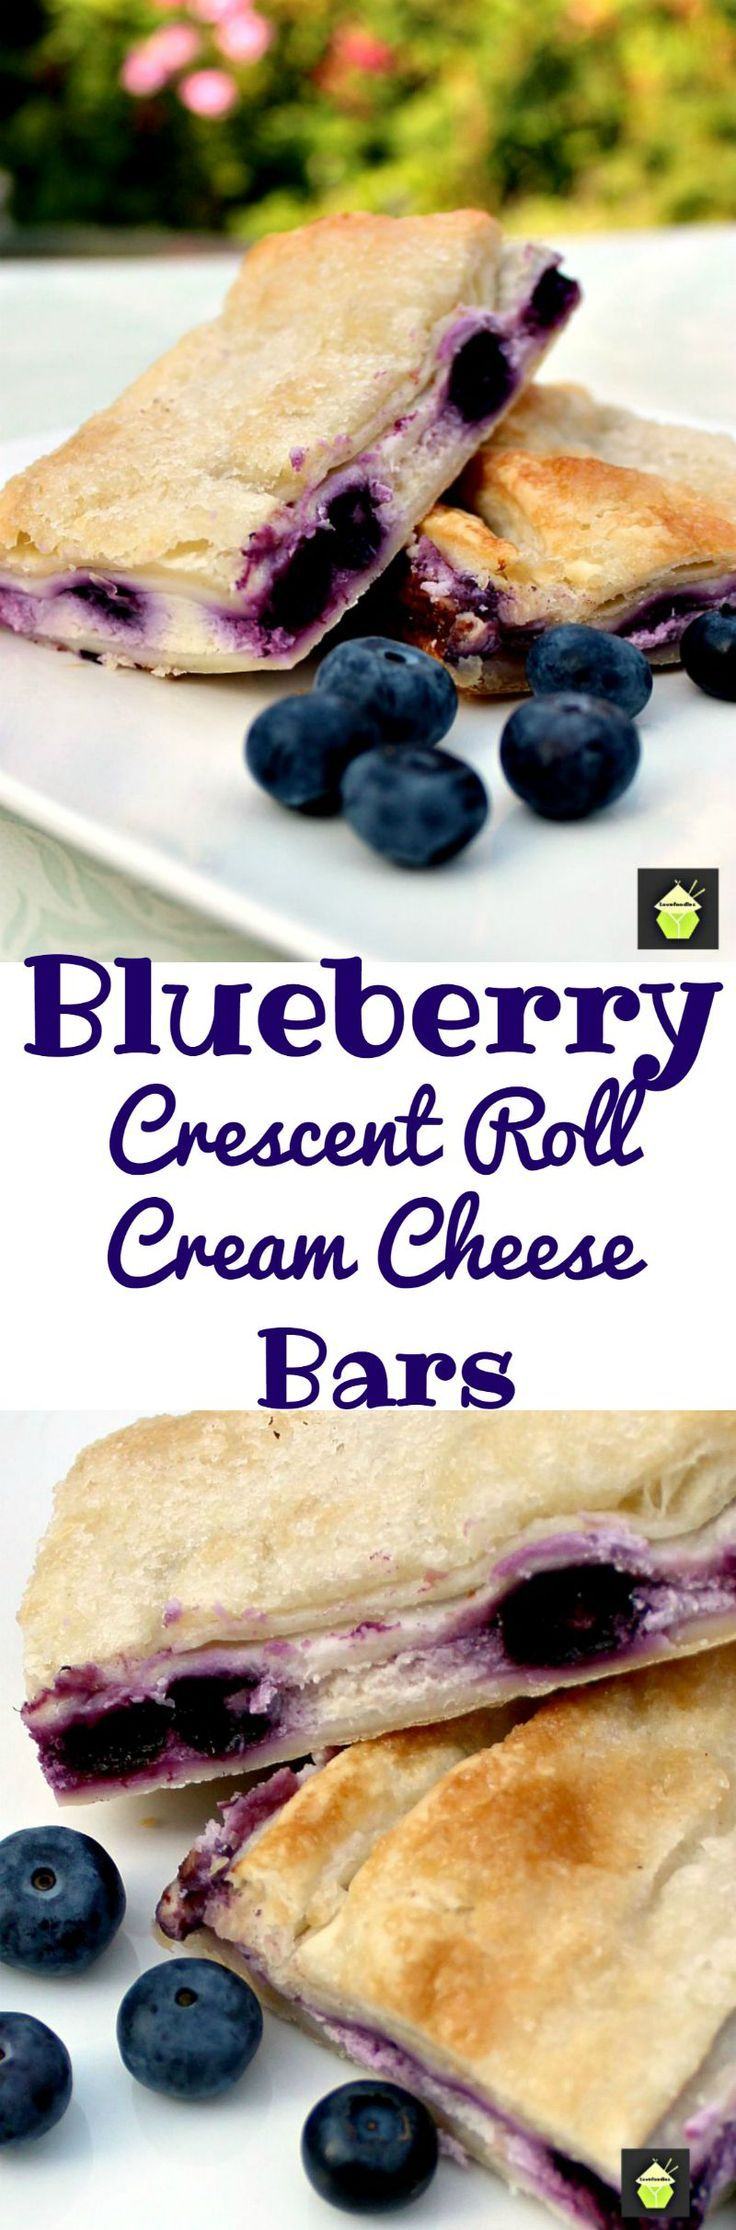 Blueberry Crescent Roll Cheesecake Bars. An incredibly easy recipe ...